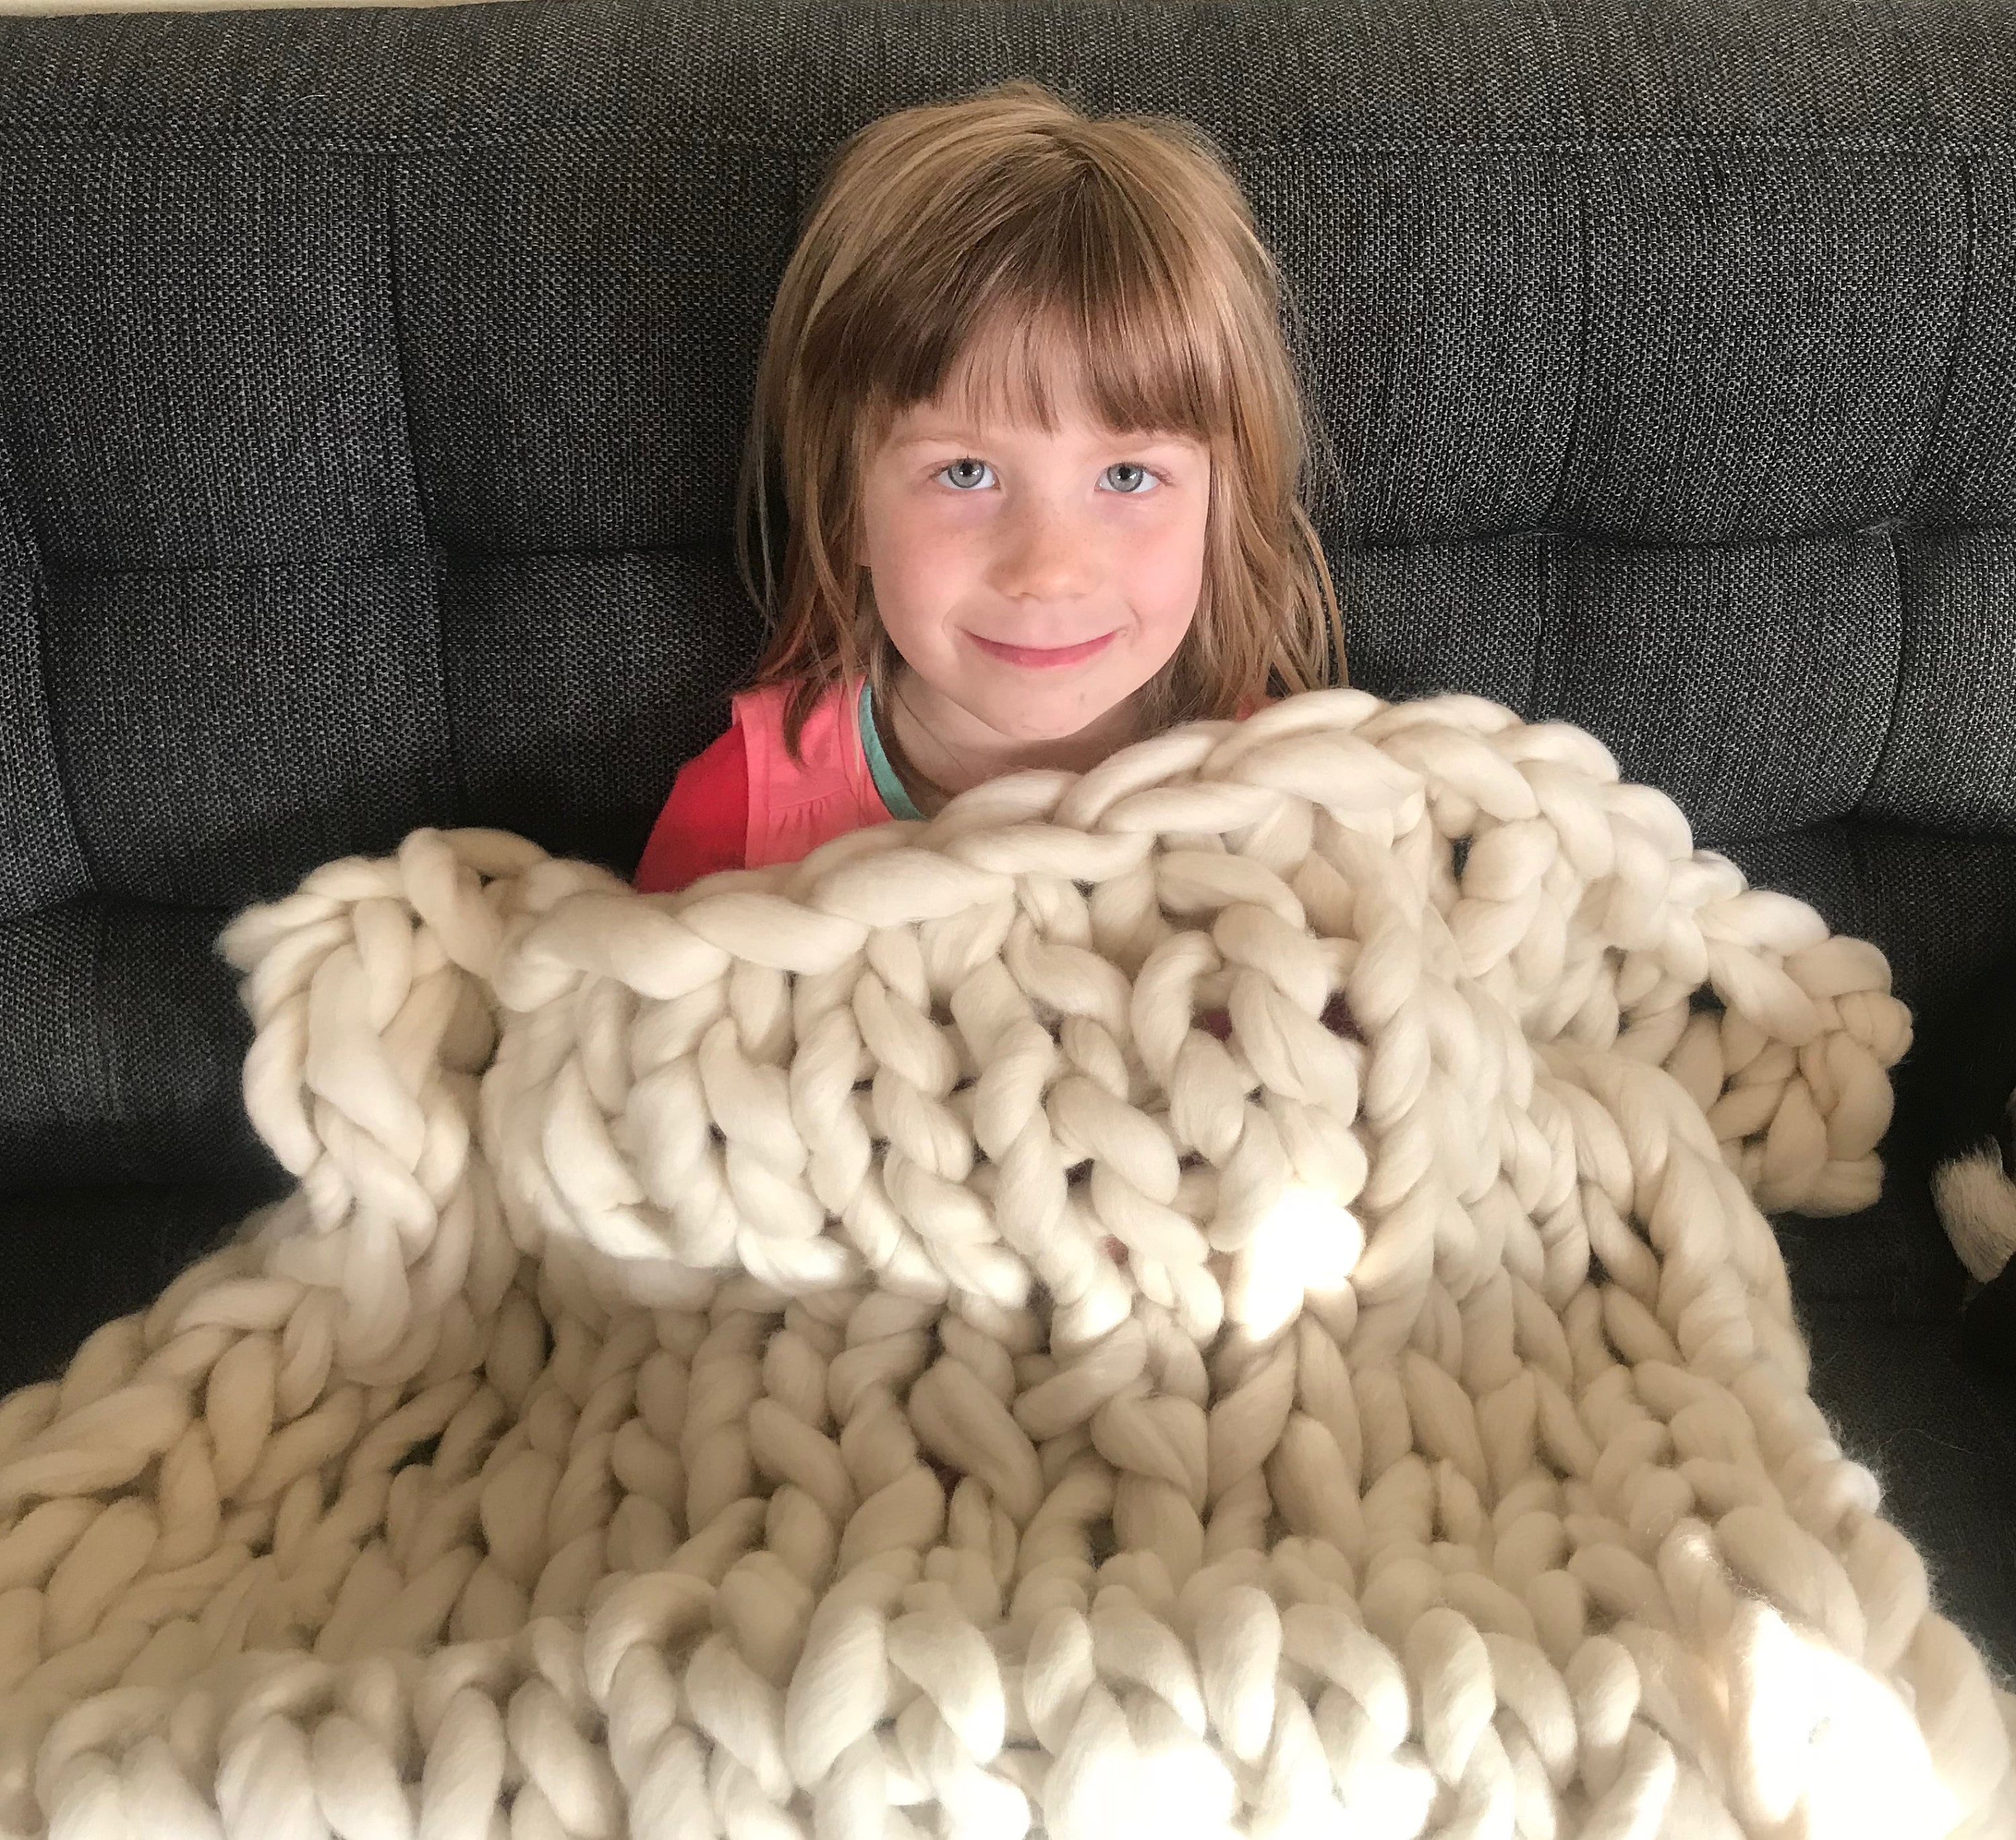 Giant knit wool throw blanket - hand knit with wool roving approximately 30x50 inches